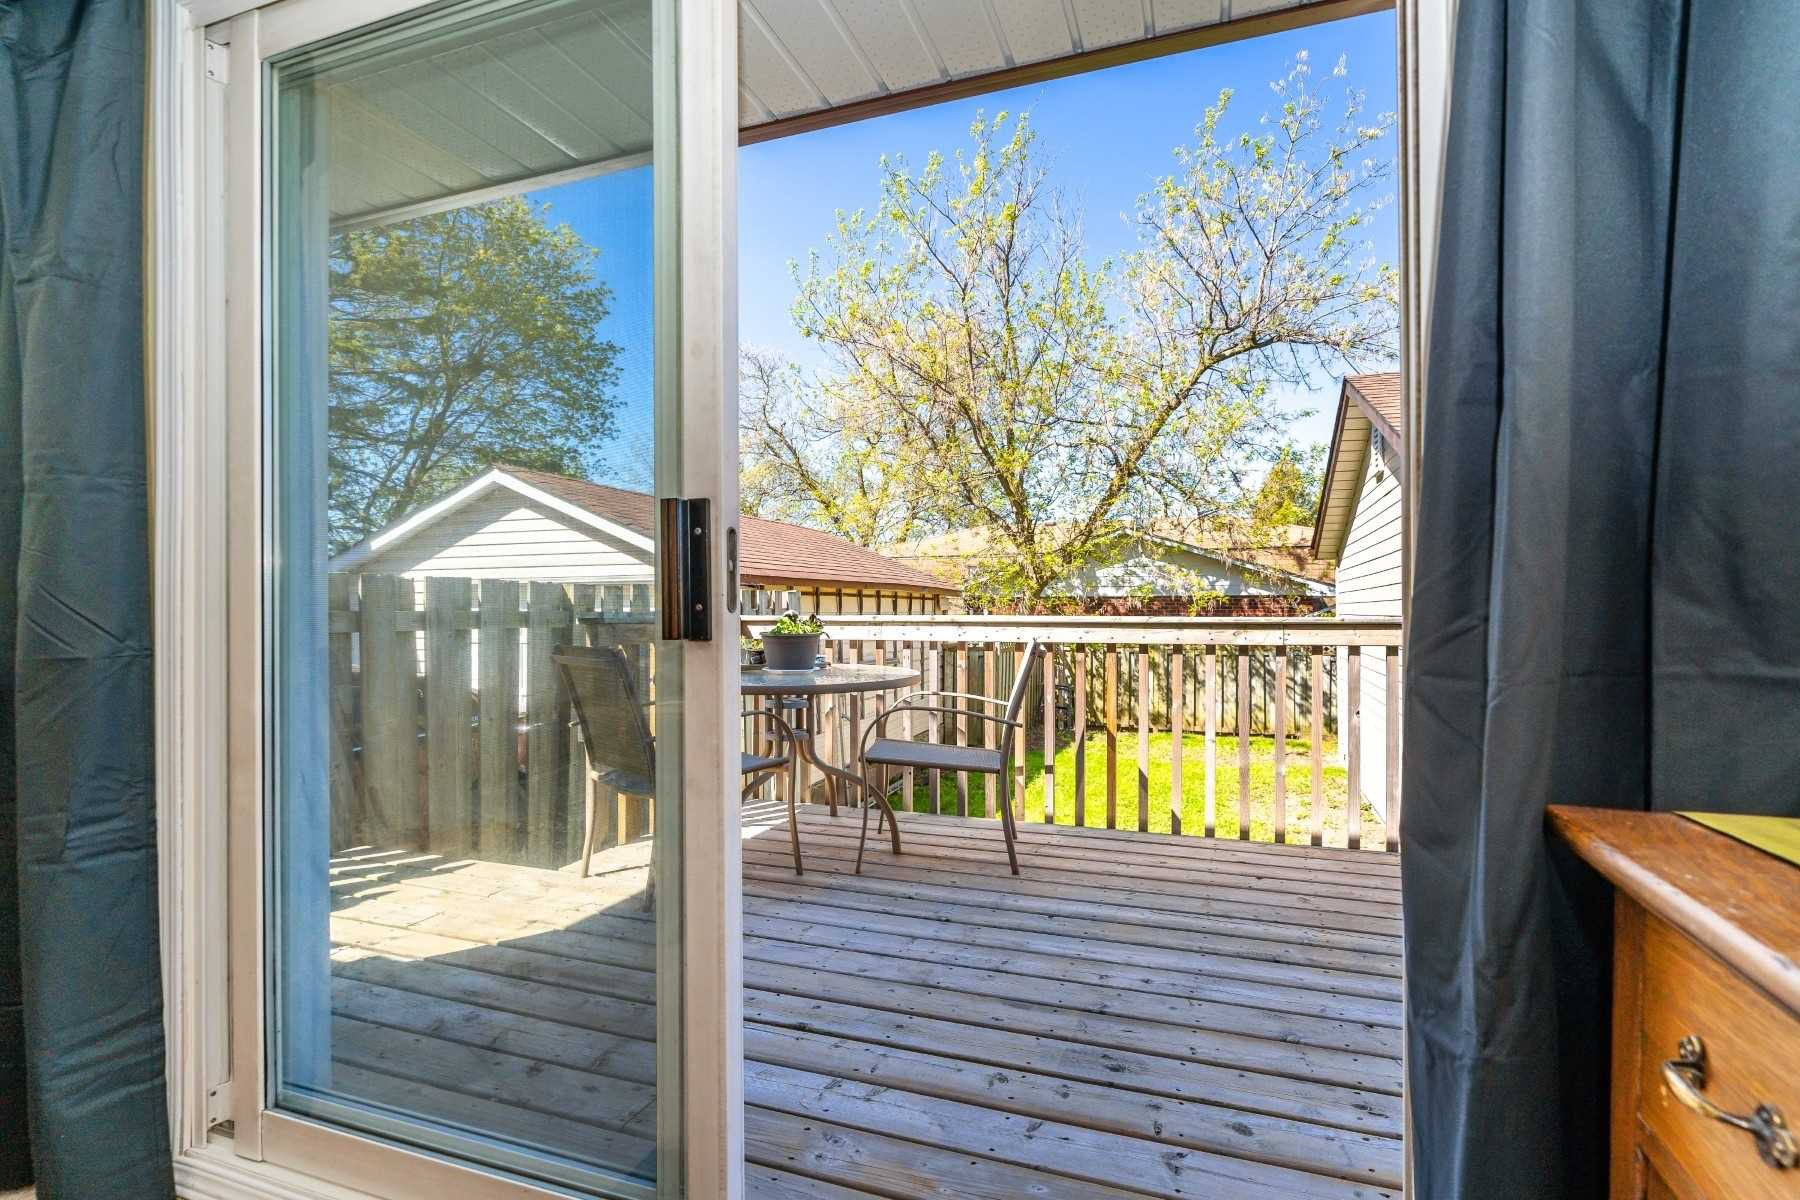 Photo 32: Photos: 40 Eastlawn Street in Oshawa: Donevan House (Bungalow) for sale : MLS®# E4769026